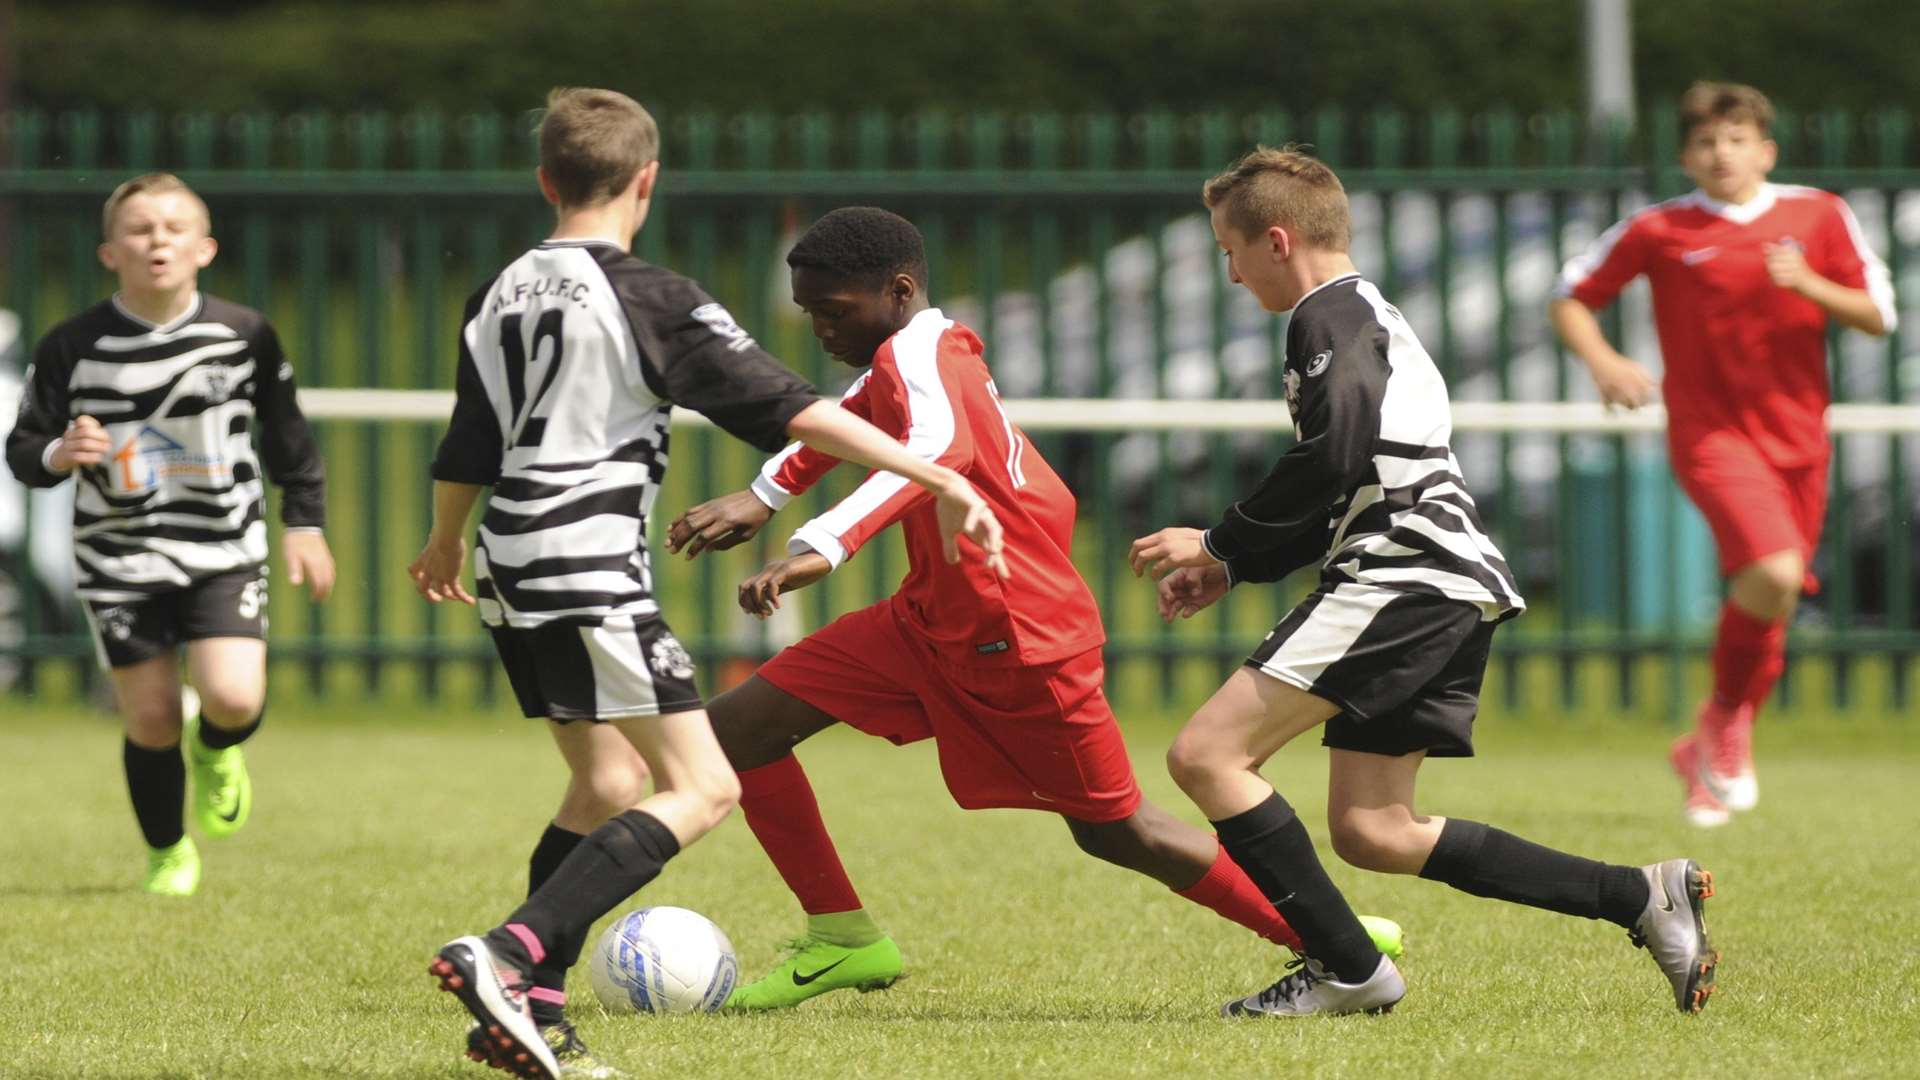 Rainham Kenilworth (red) take the game to Milton & Fulston United in the Under-13 League Cup final Picture: Steve Crispe